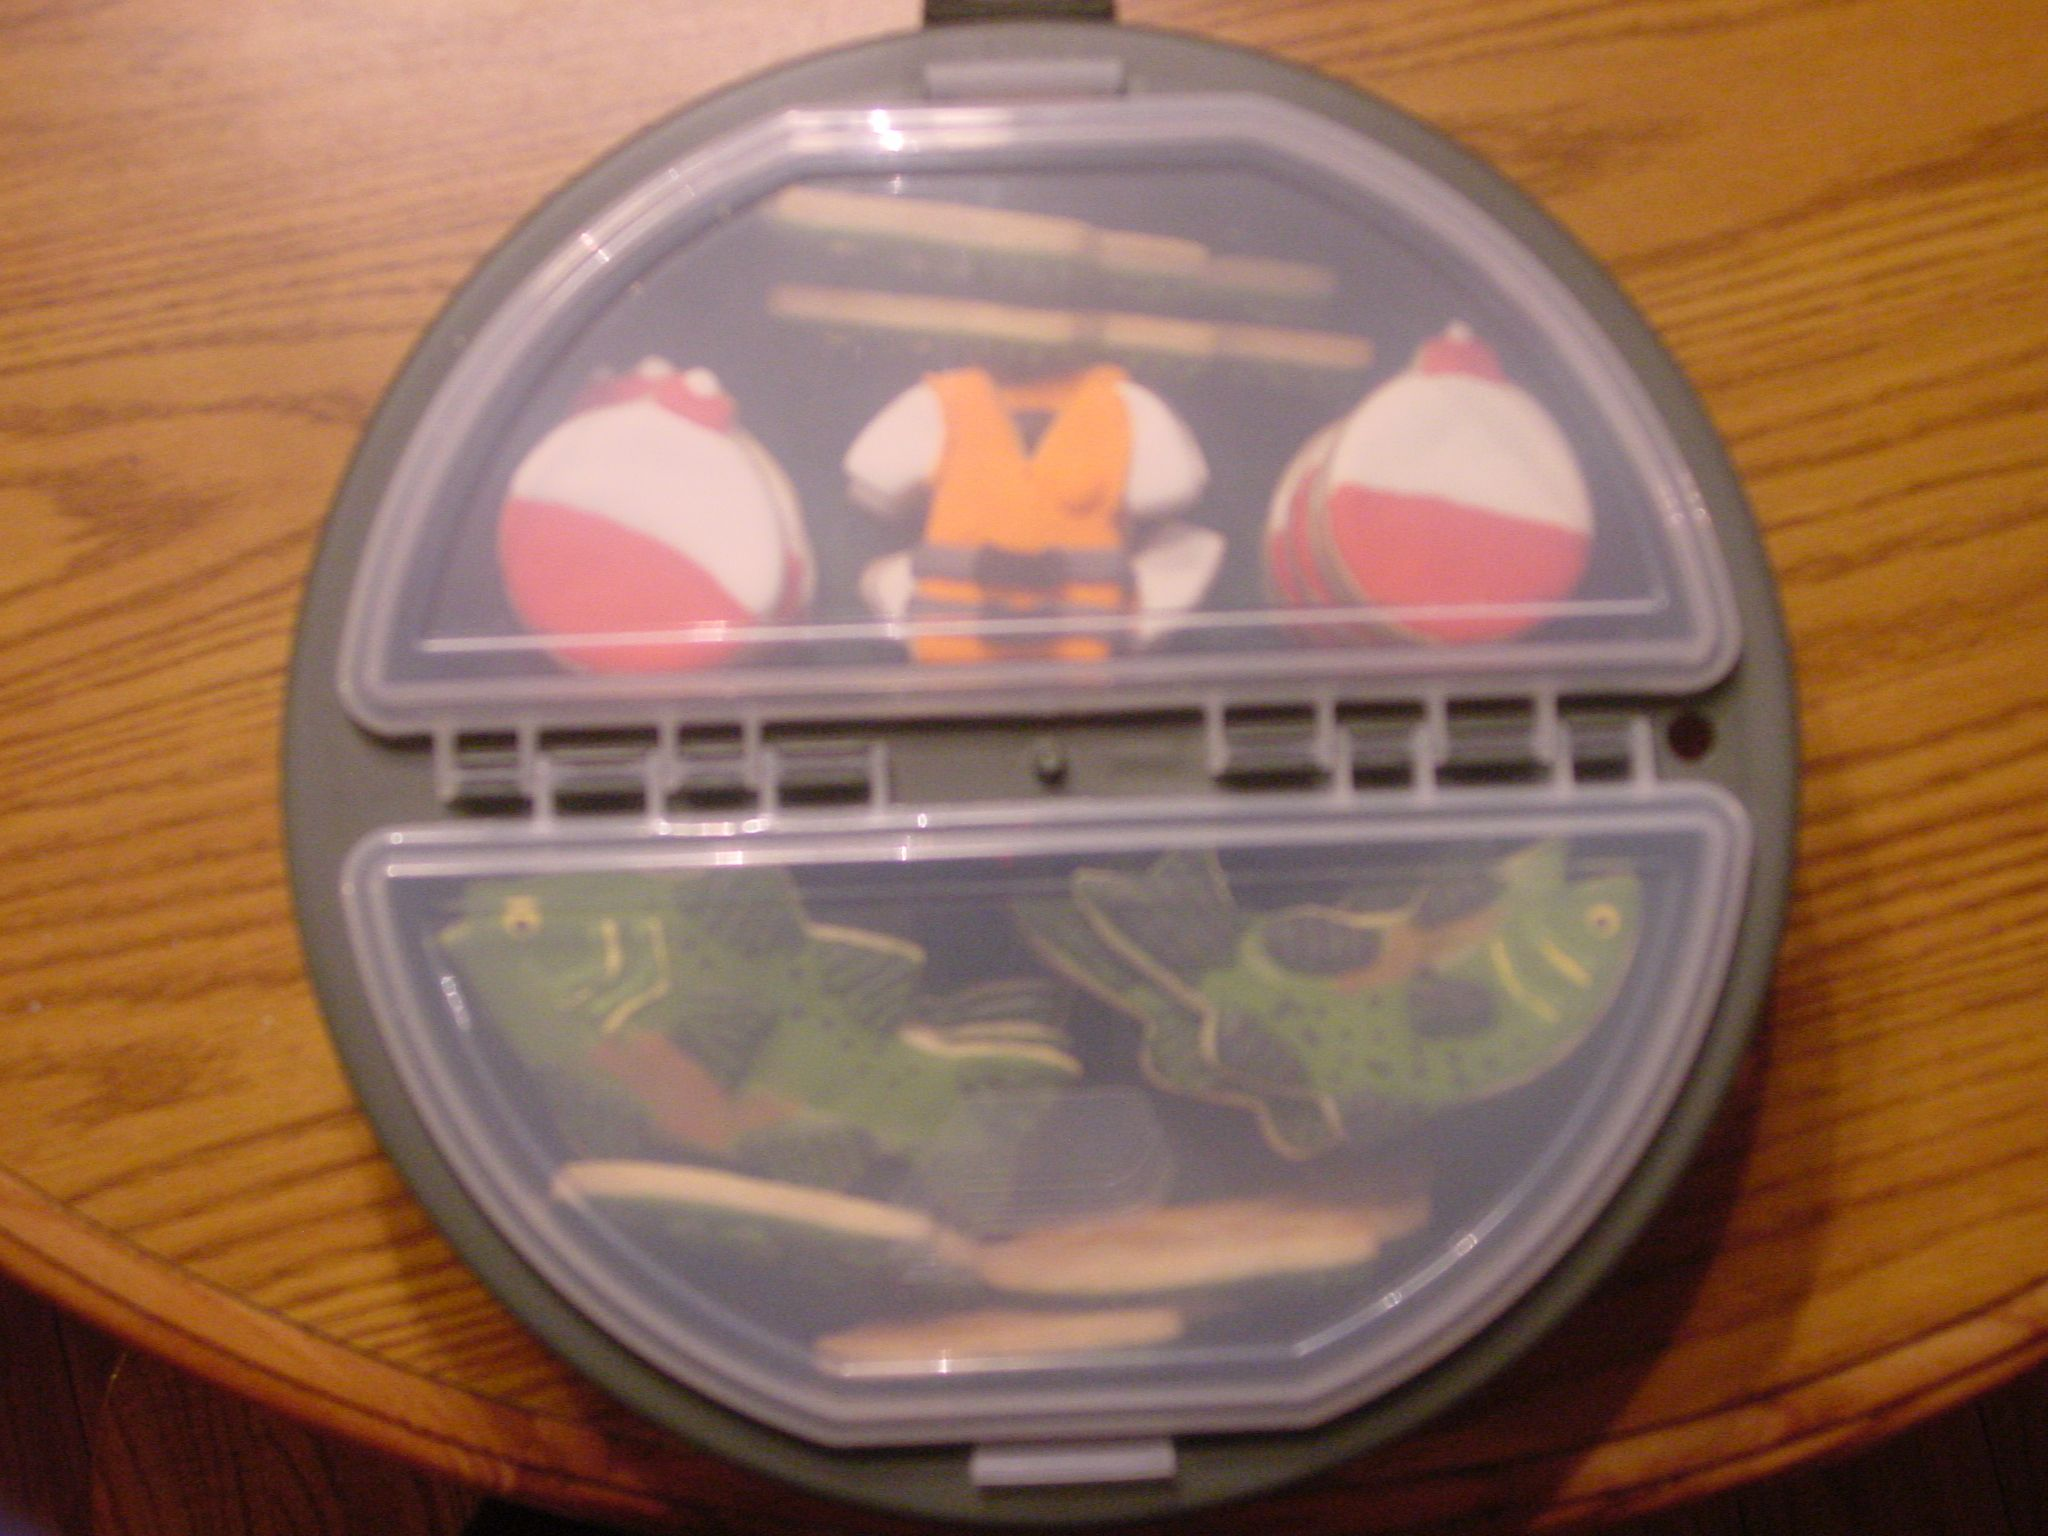 I used a tackle box for a fishing pail to put the fish cookies in as a gift.